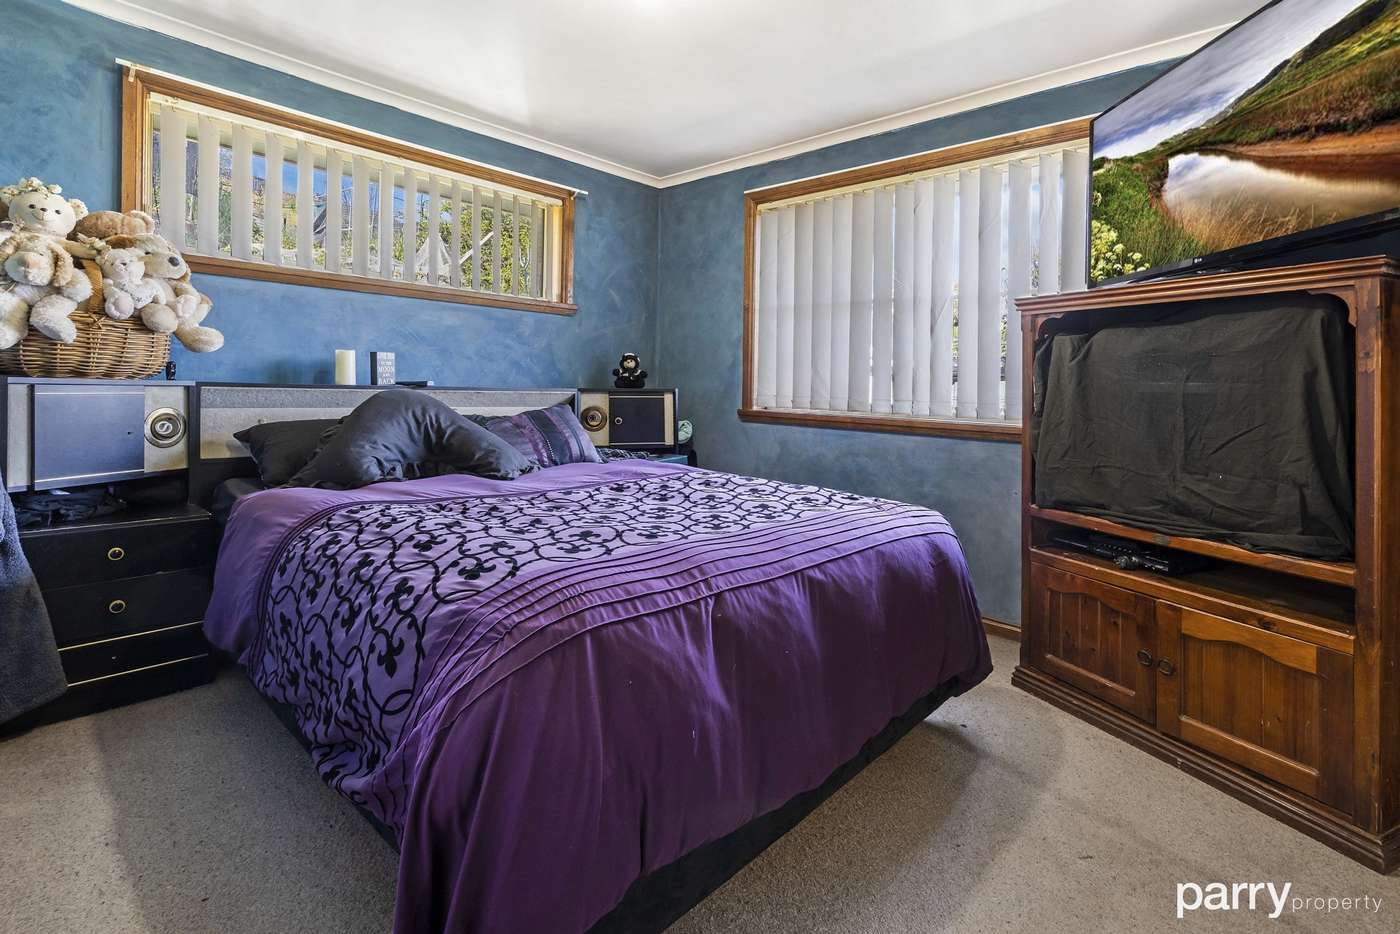 Sixth view of Homely house listing, 63 Outram Street, Summerhill TAS 7250